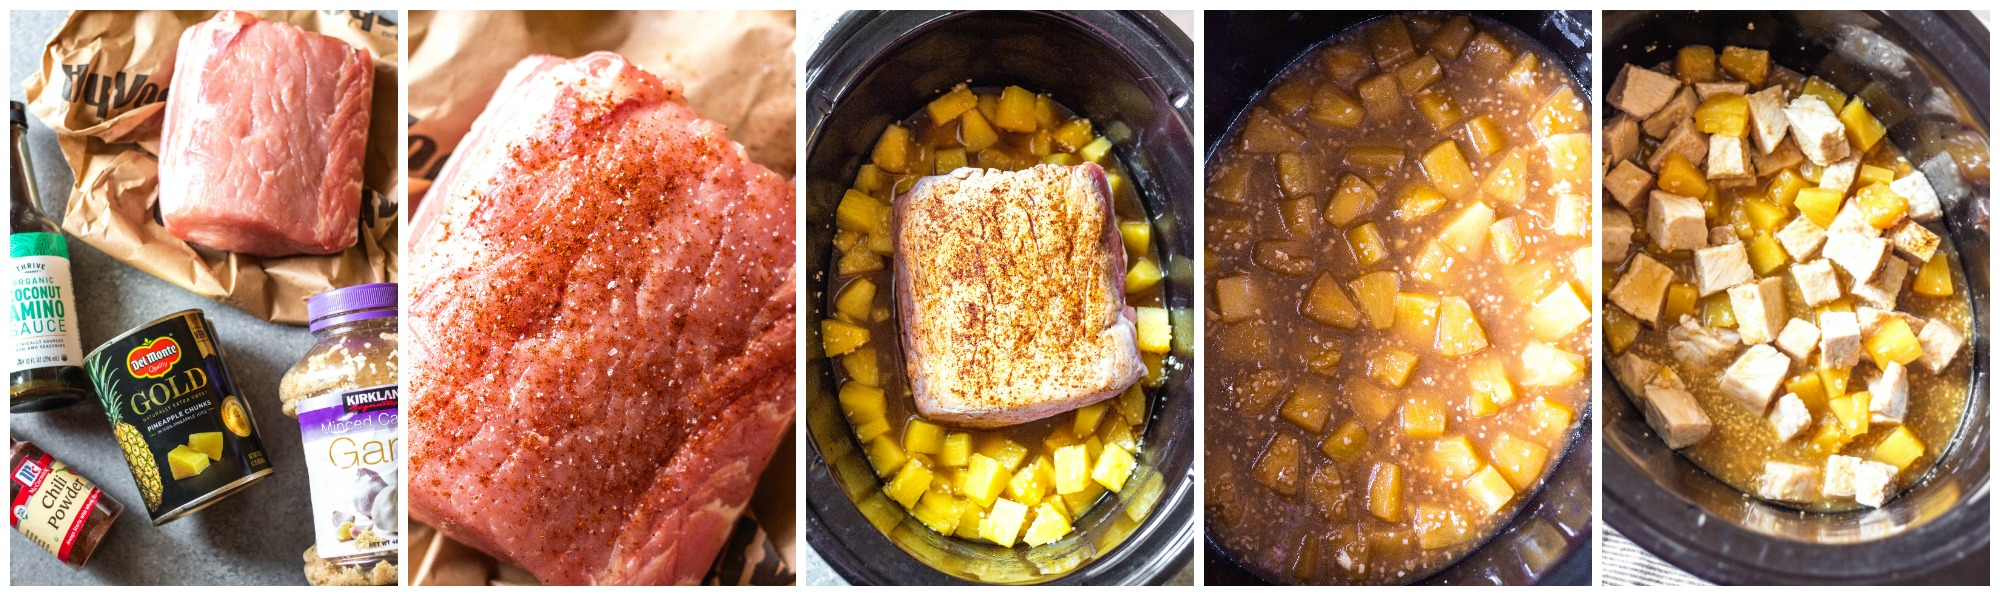 whole30 slow cooker pineapple pork cooking process